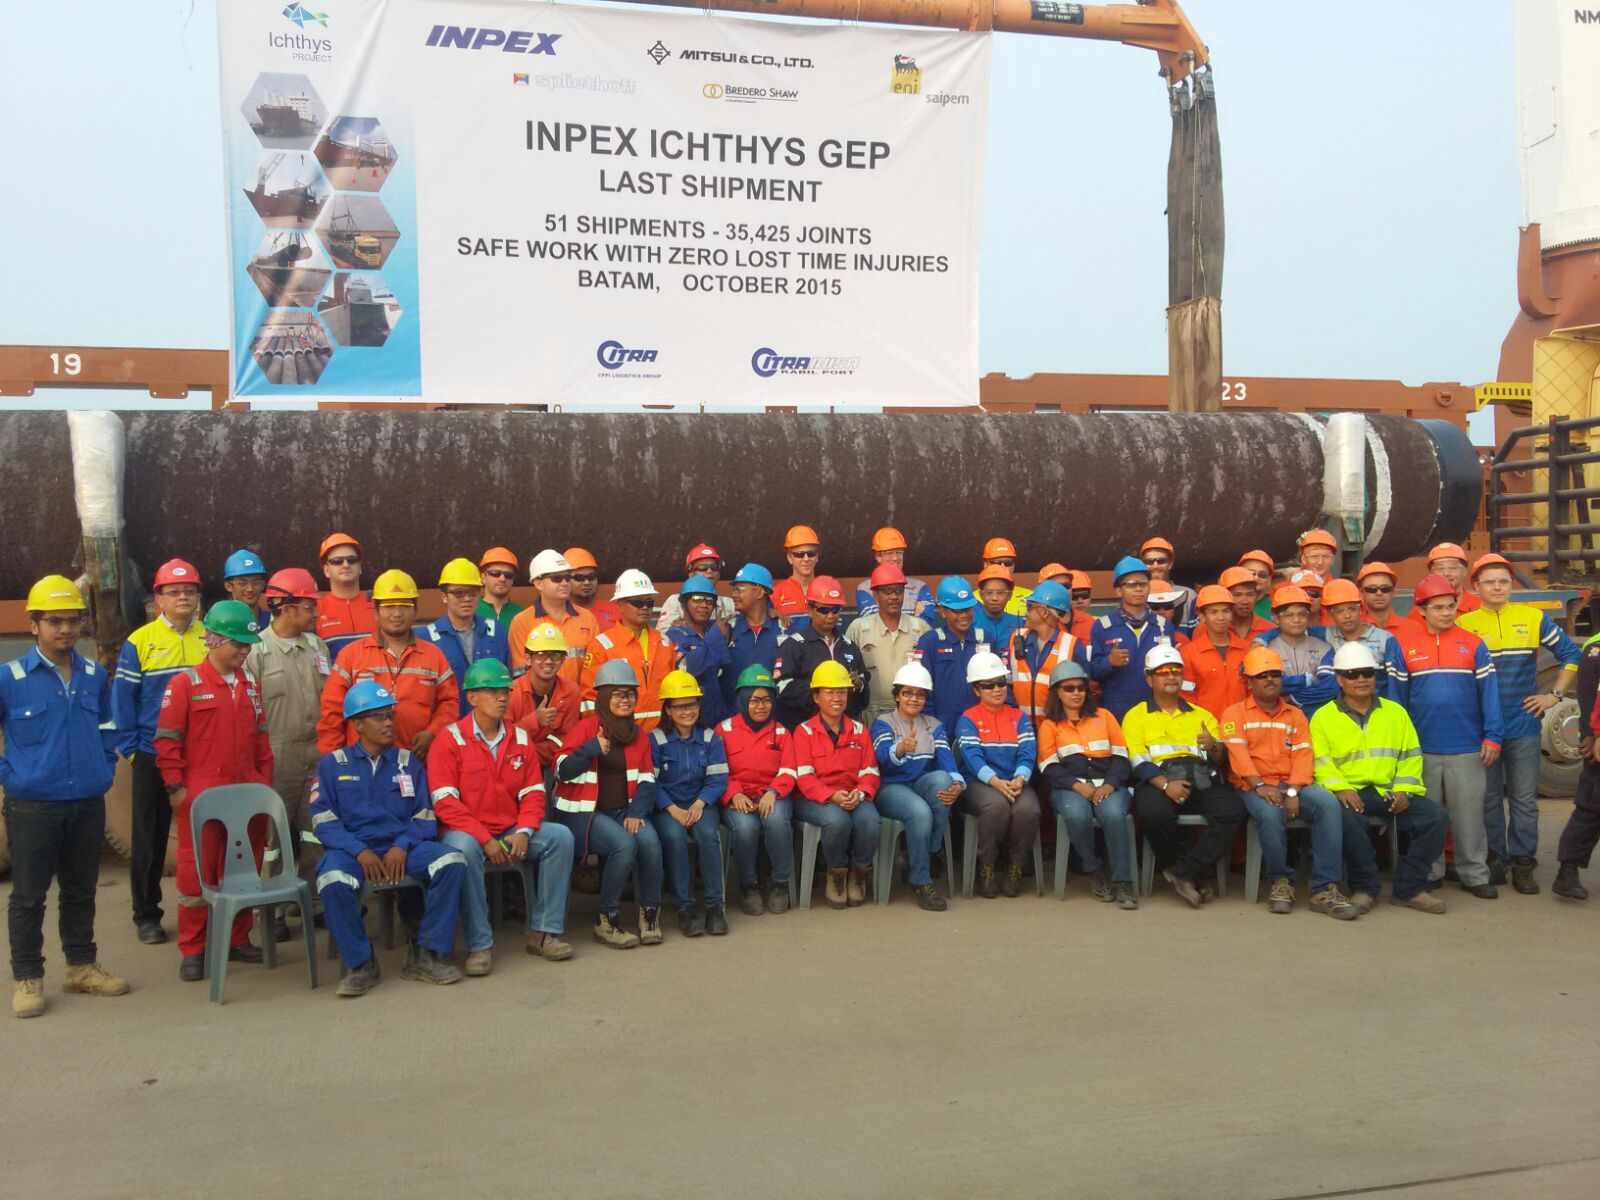 INPEX Ichthys LNG Project